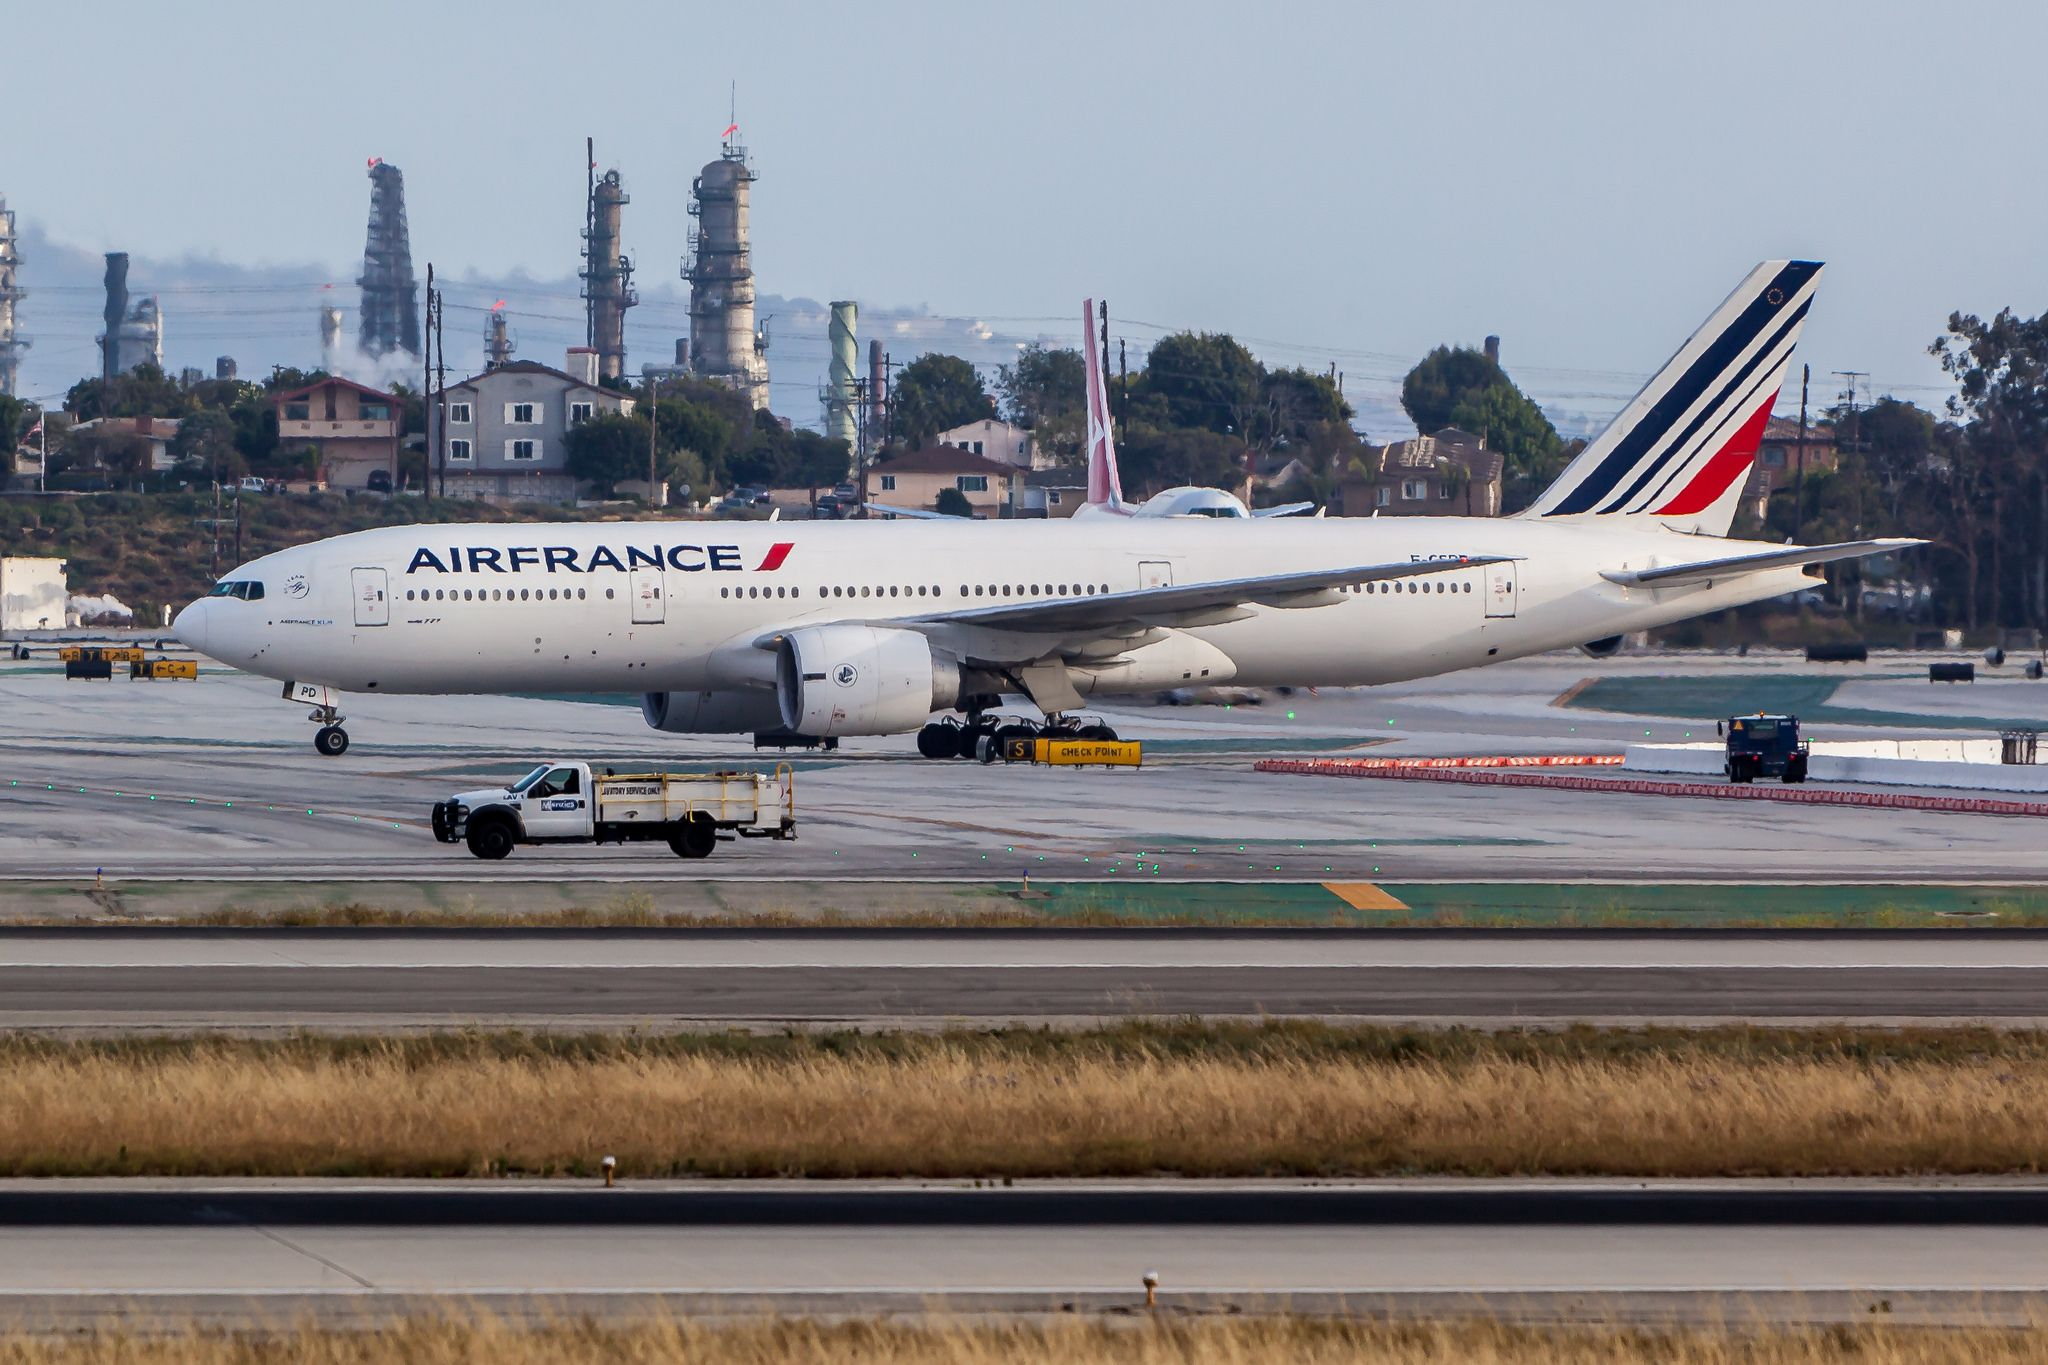 Air France: New Service between Paris (CDG) and Seattle (SEA) Starting next Year